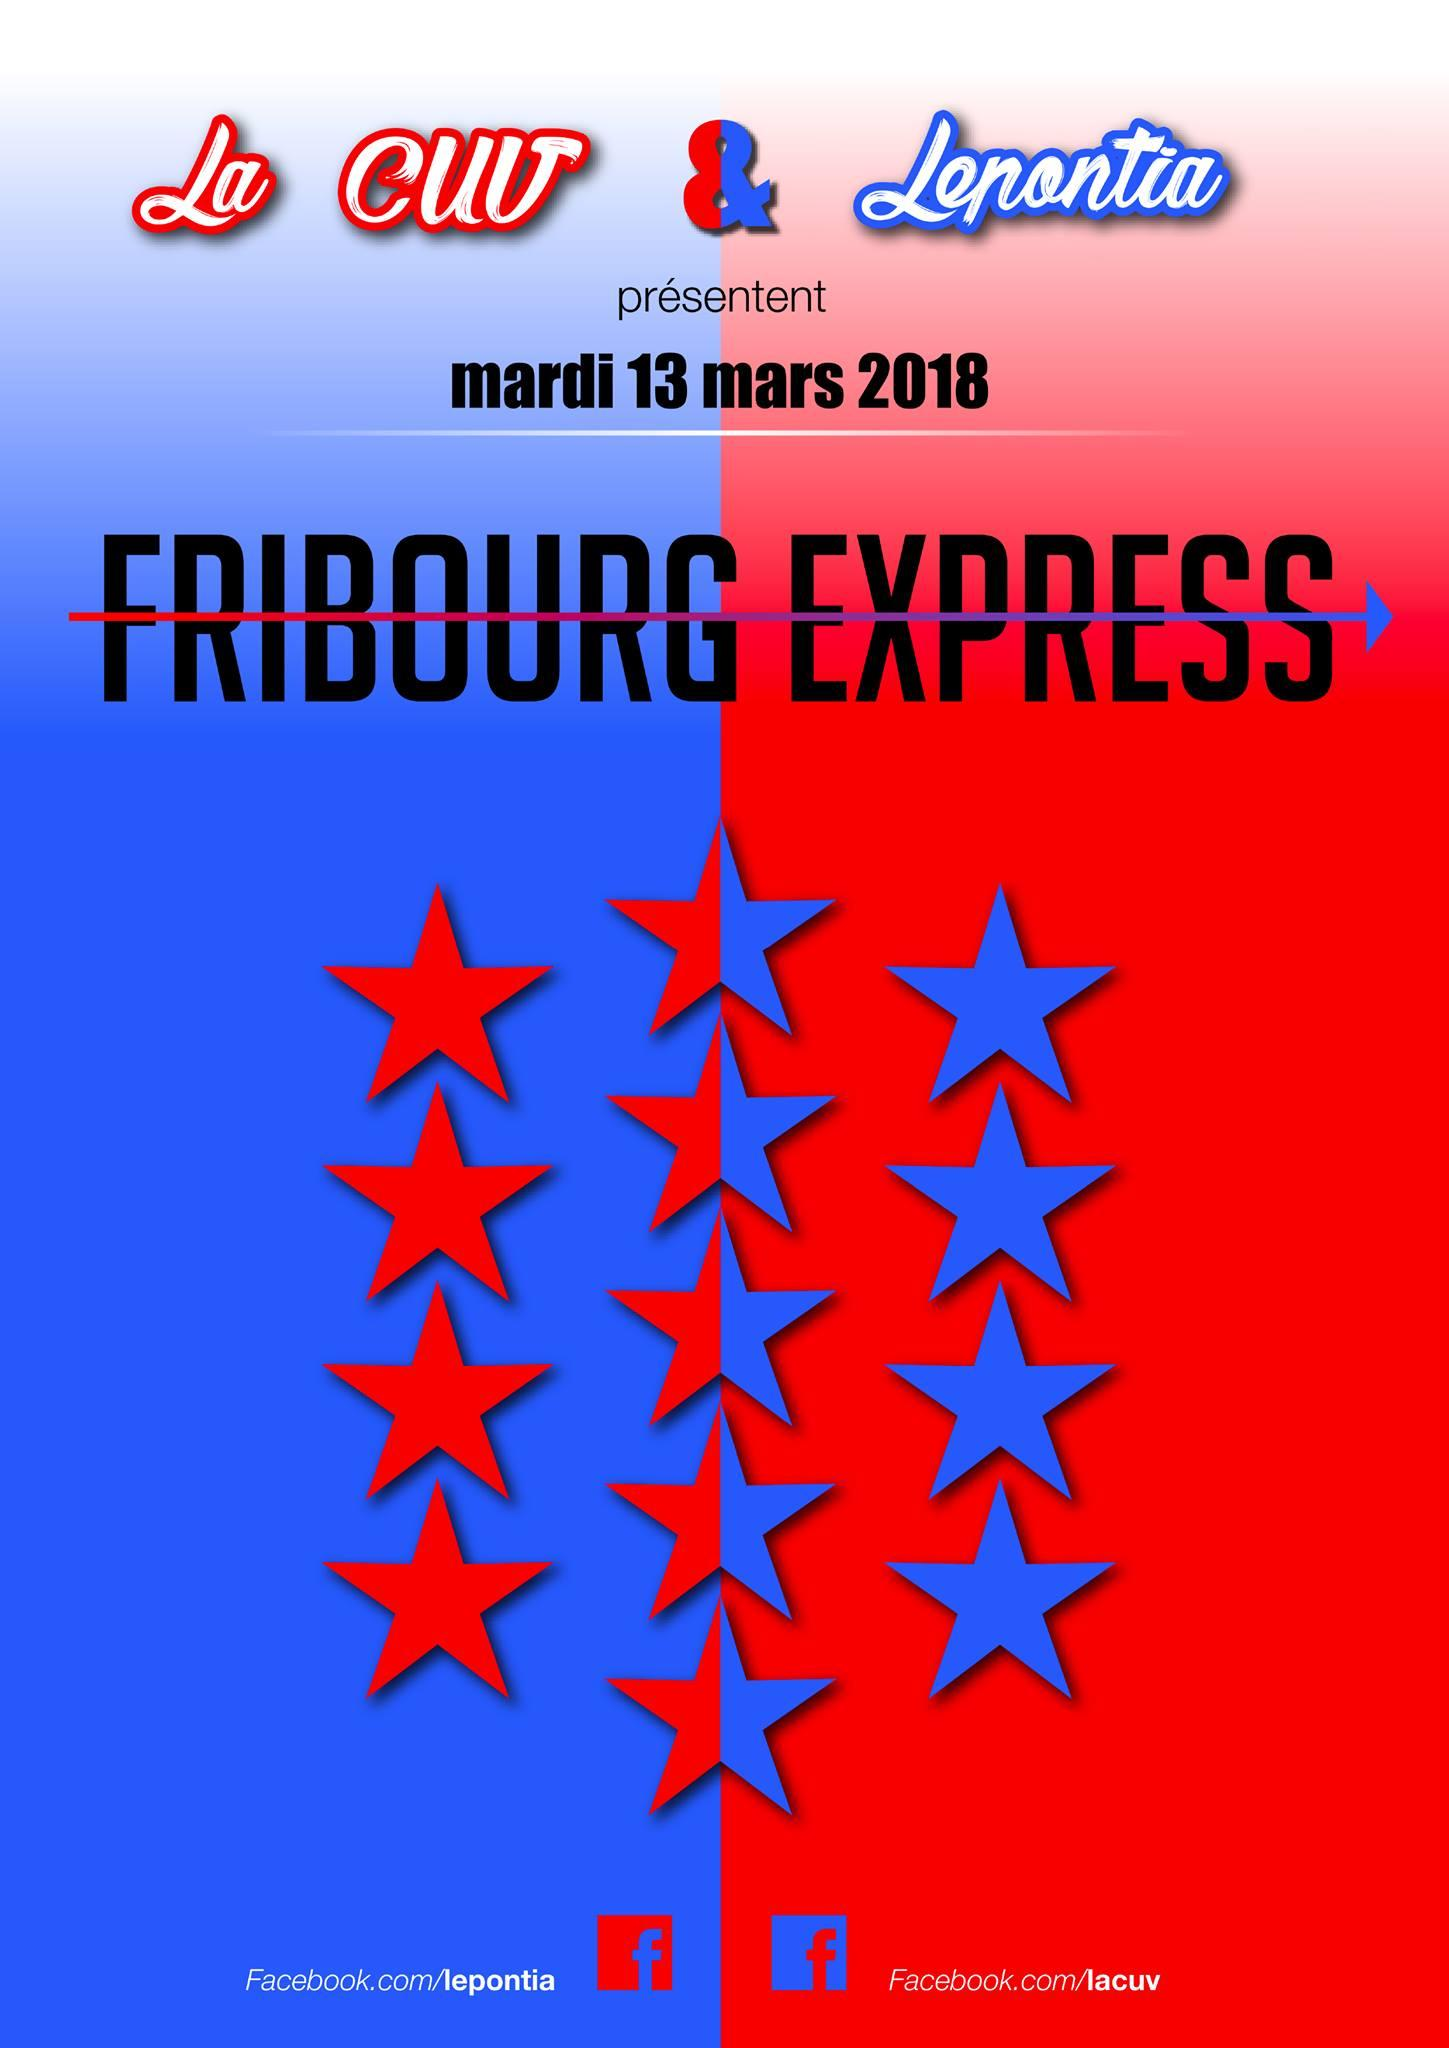 Fribourg Express